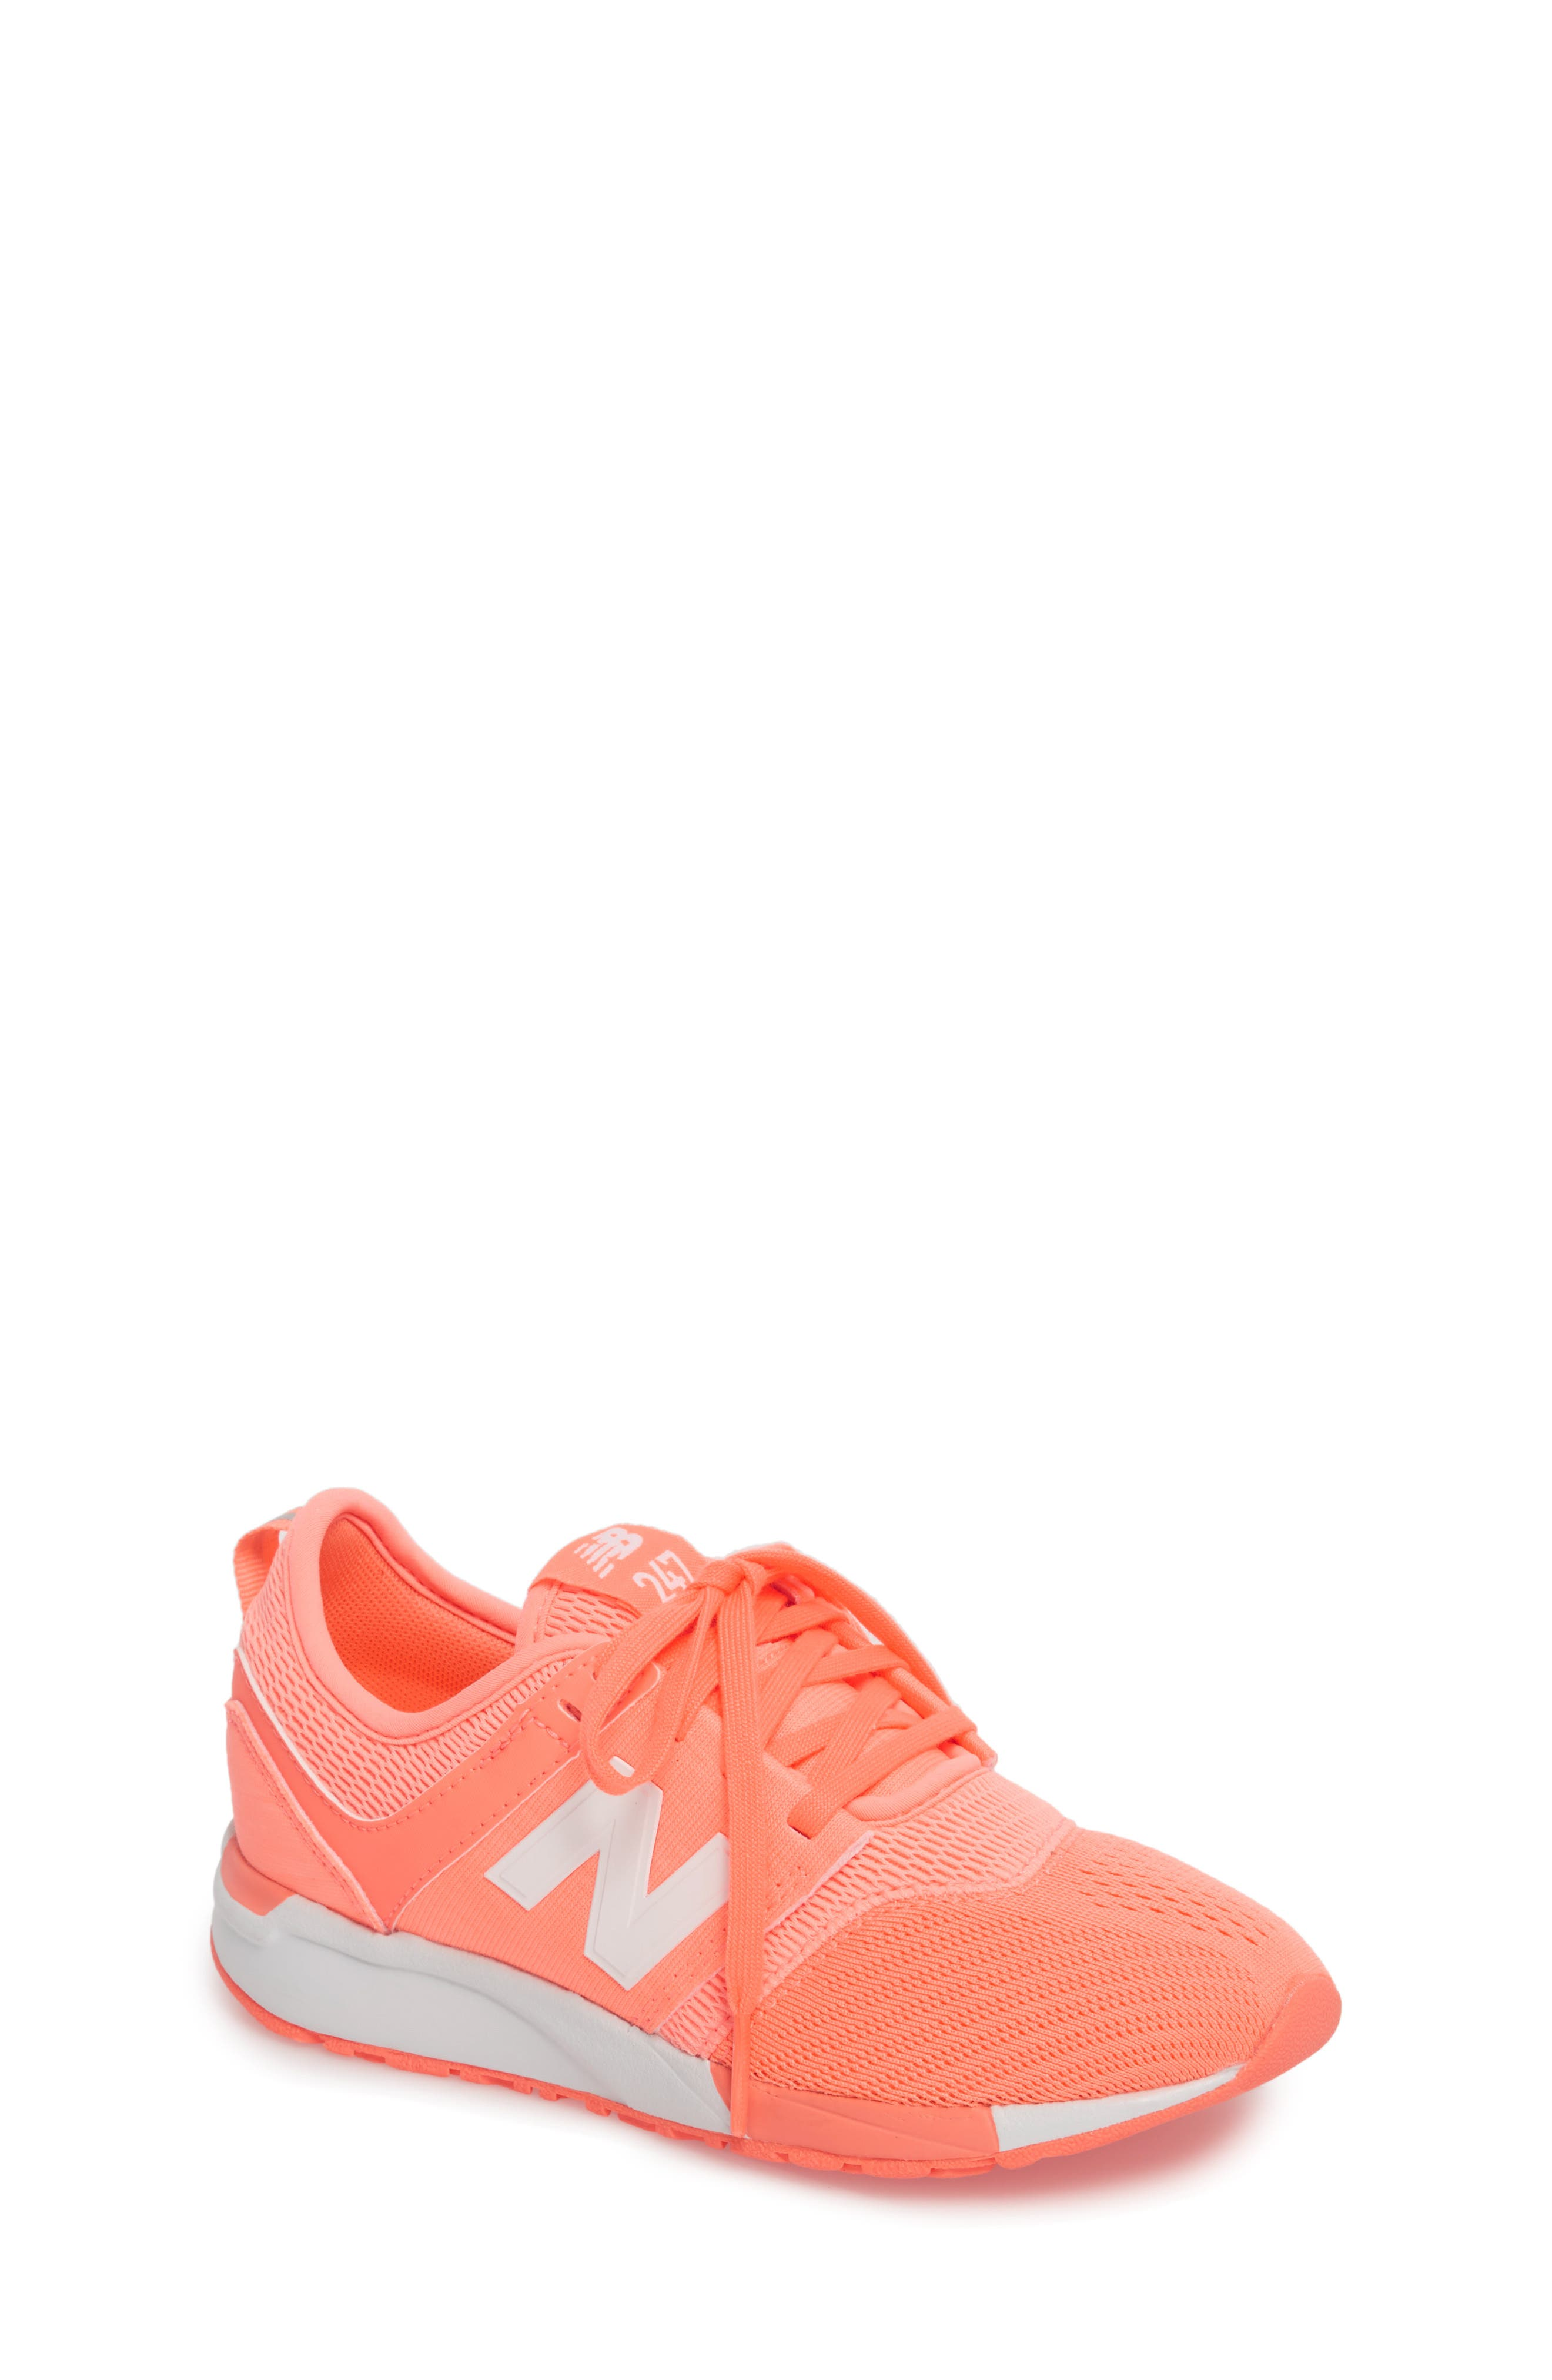 247 Sport Sneaker,                             Main thumbnail 1, color,                             Pink/ White